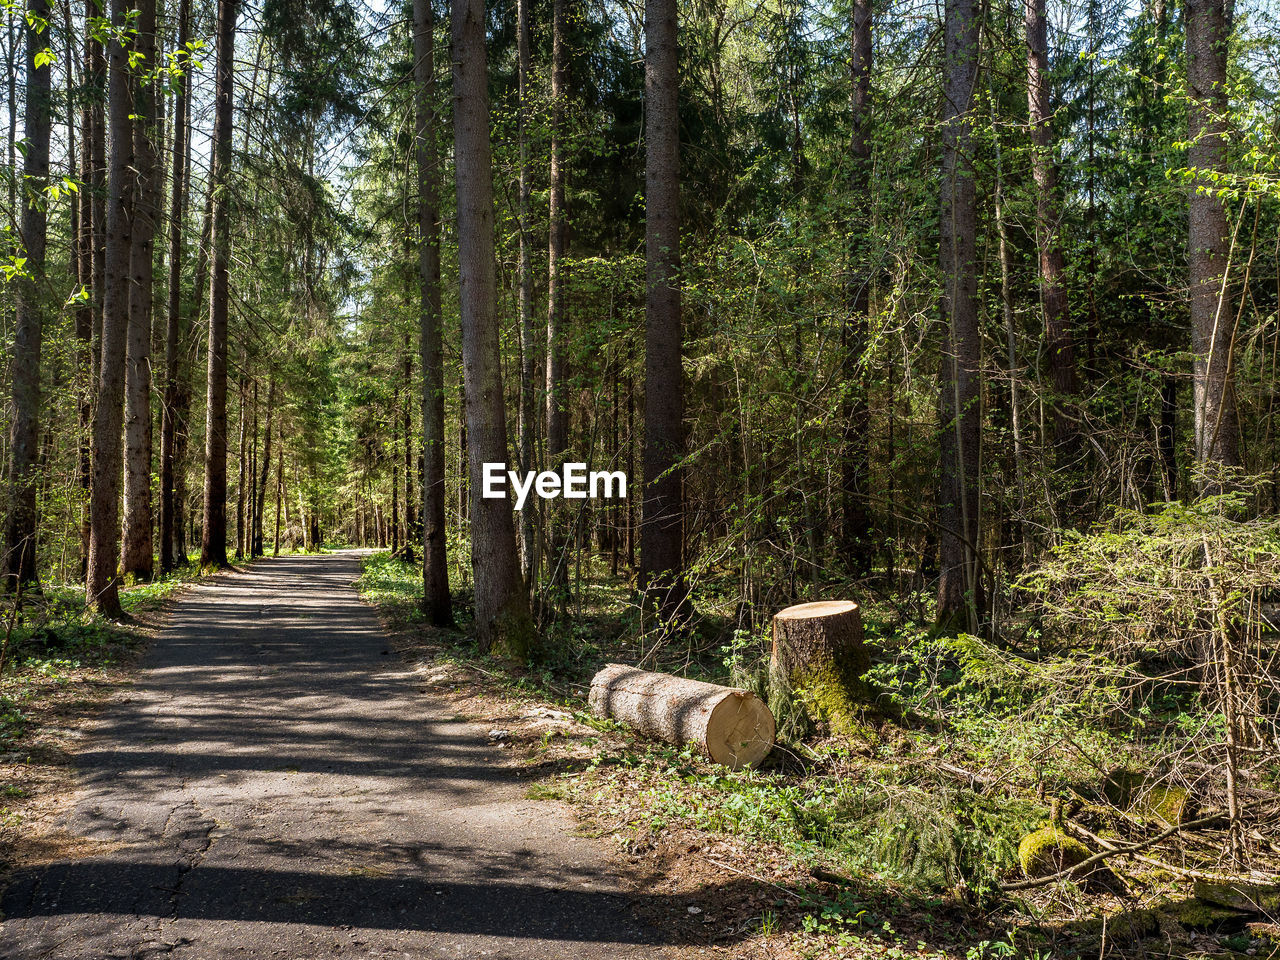 tree, forest, plant, land, mammal, animal, woodland, nature, no people, animal themes, one animal, day, road, growth, tranquility, the way forward, direction, tree trunk, sunlight, trunk, outdoors